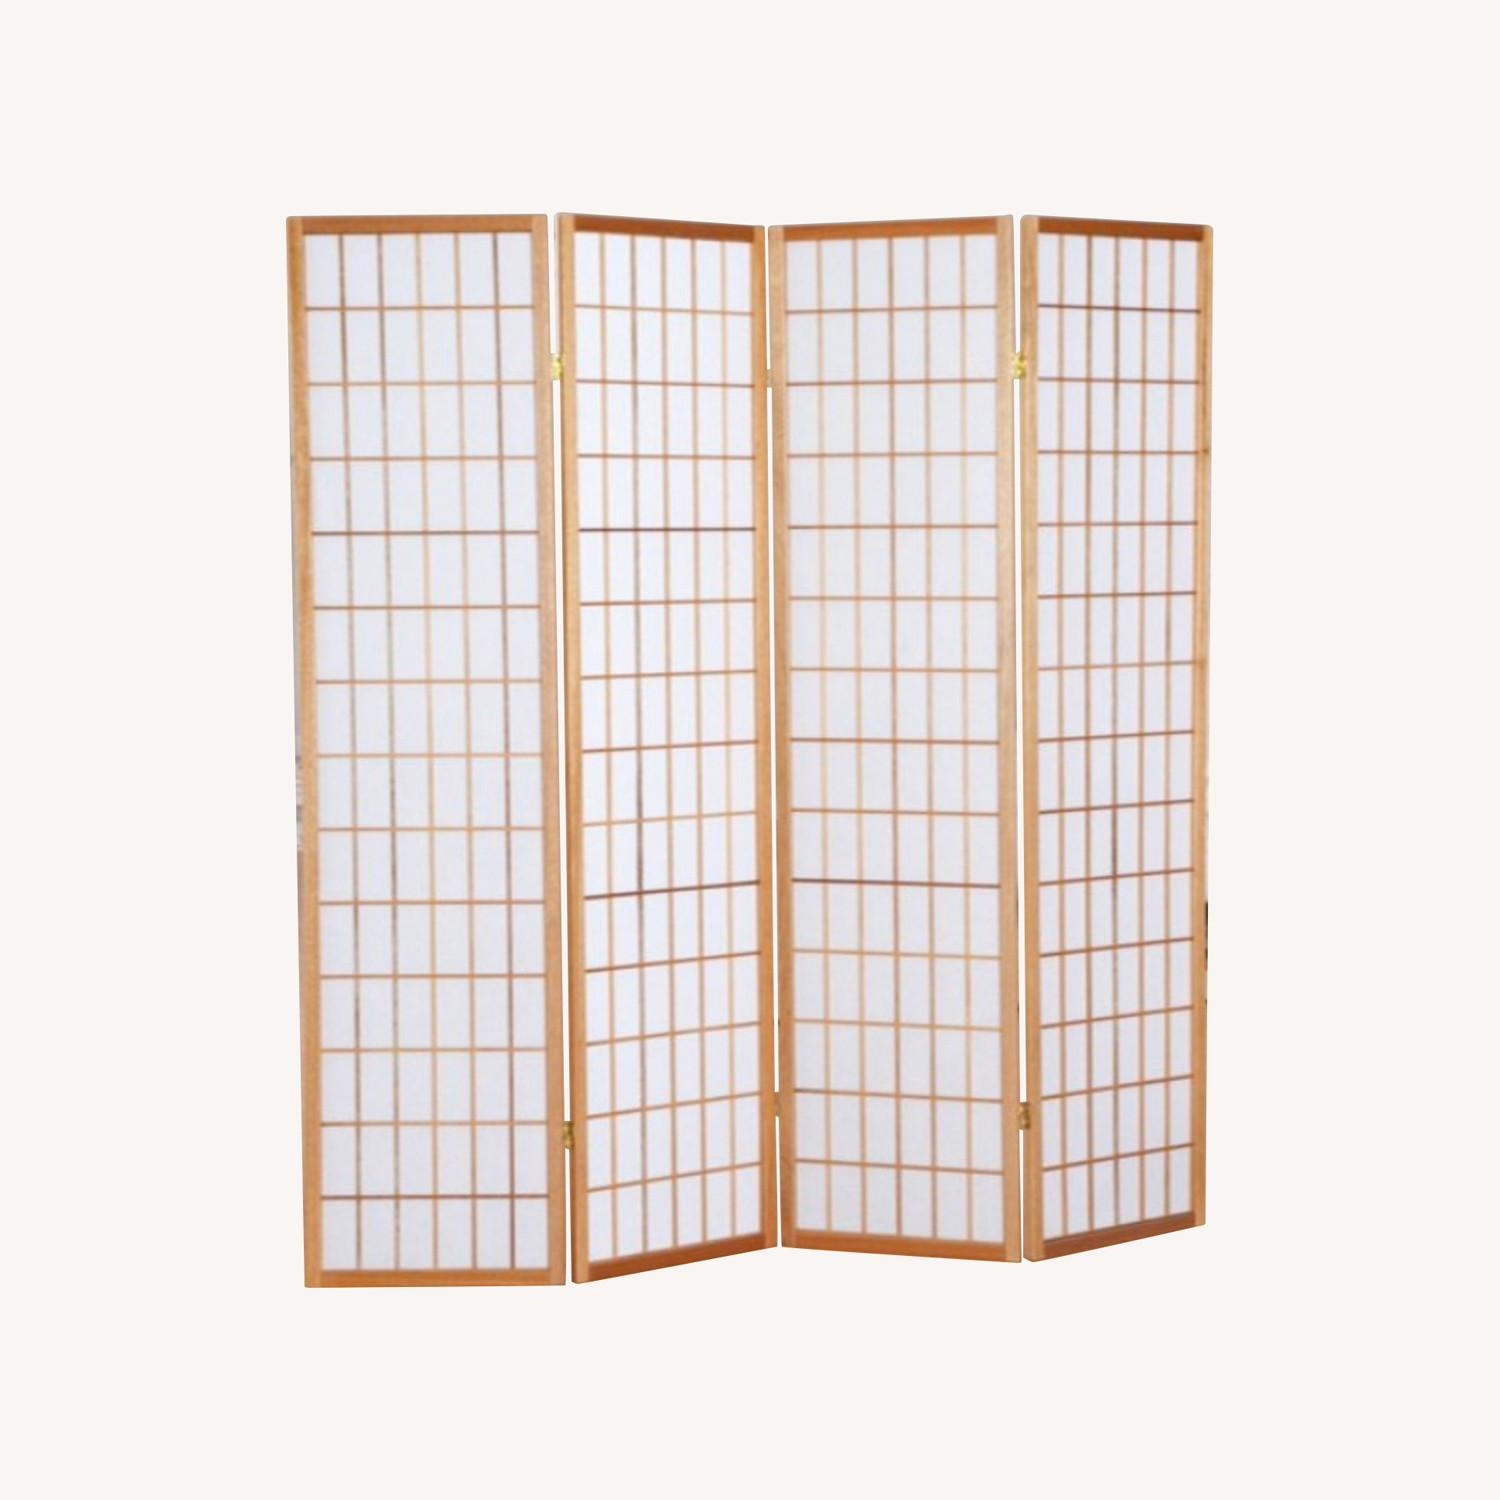 Jakun 4 Panel Shoji Room Divider with Stand - image-0